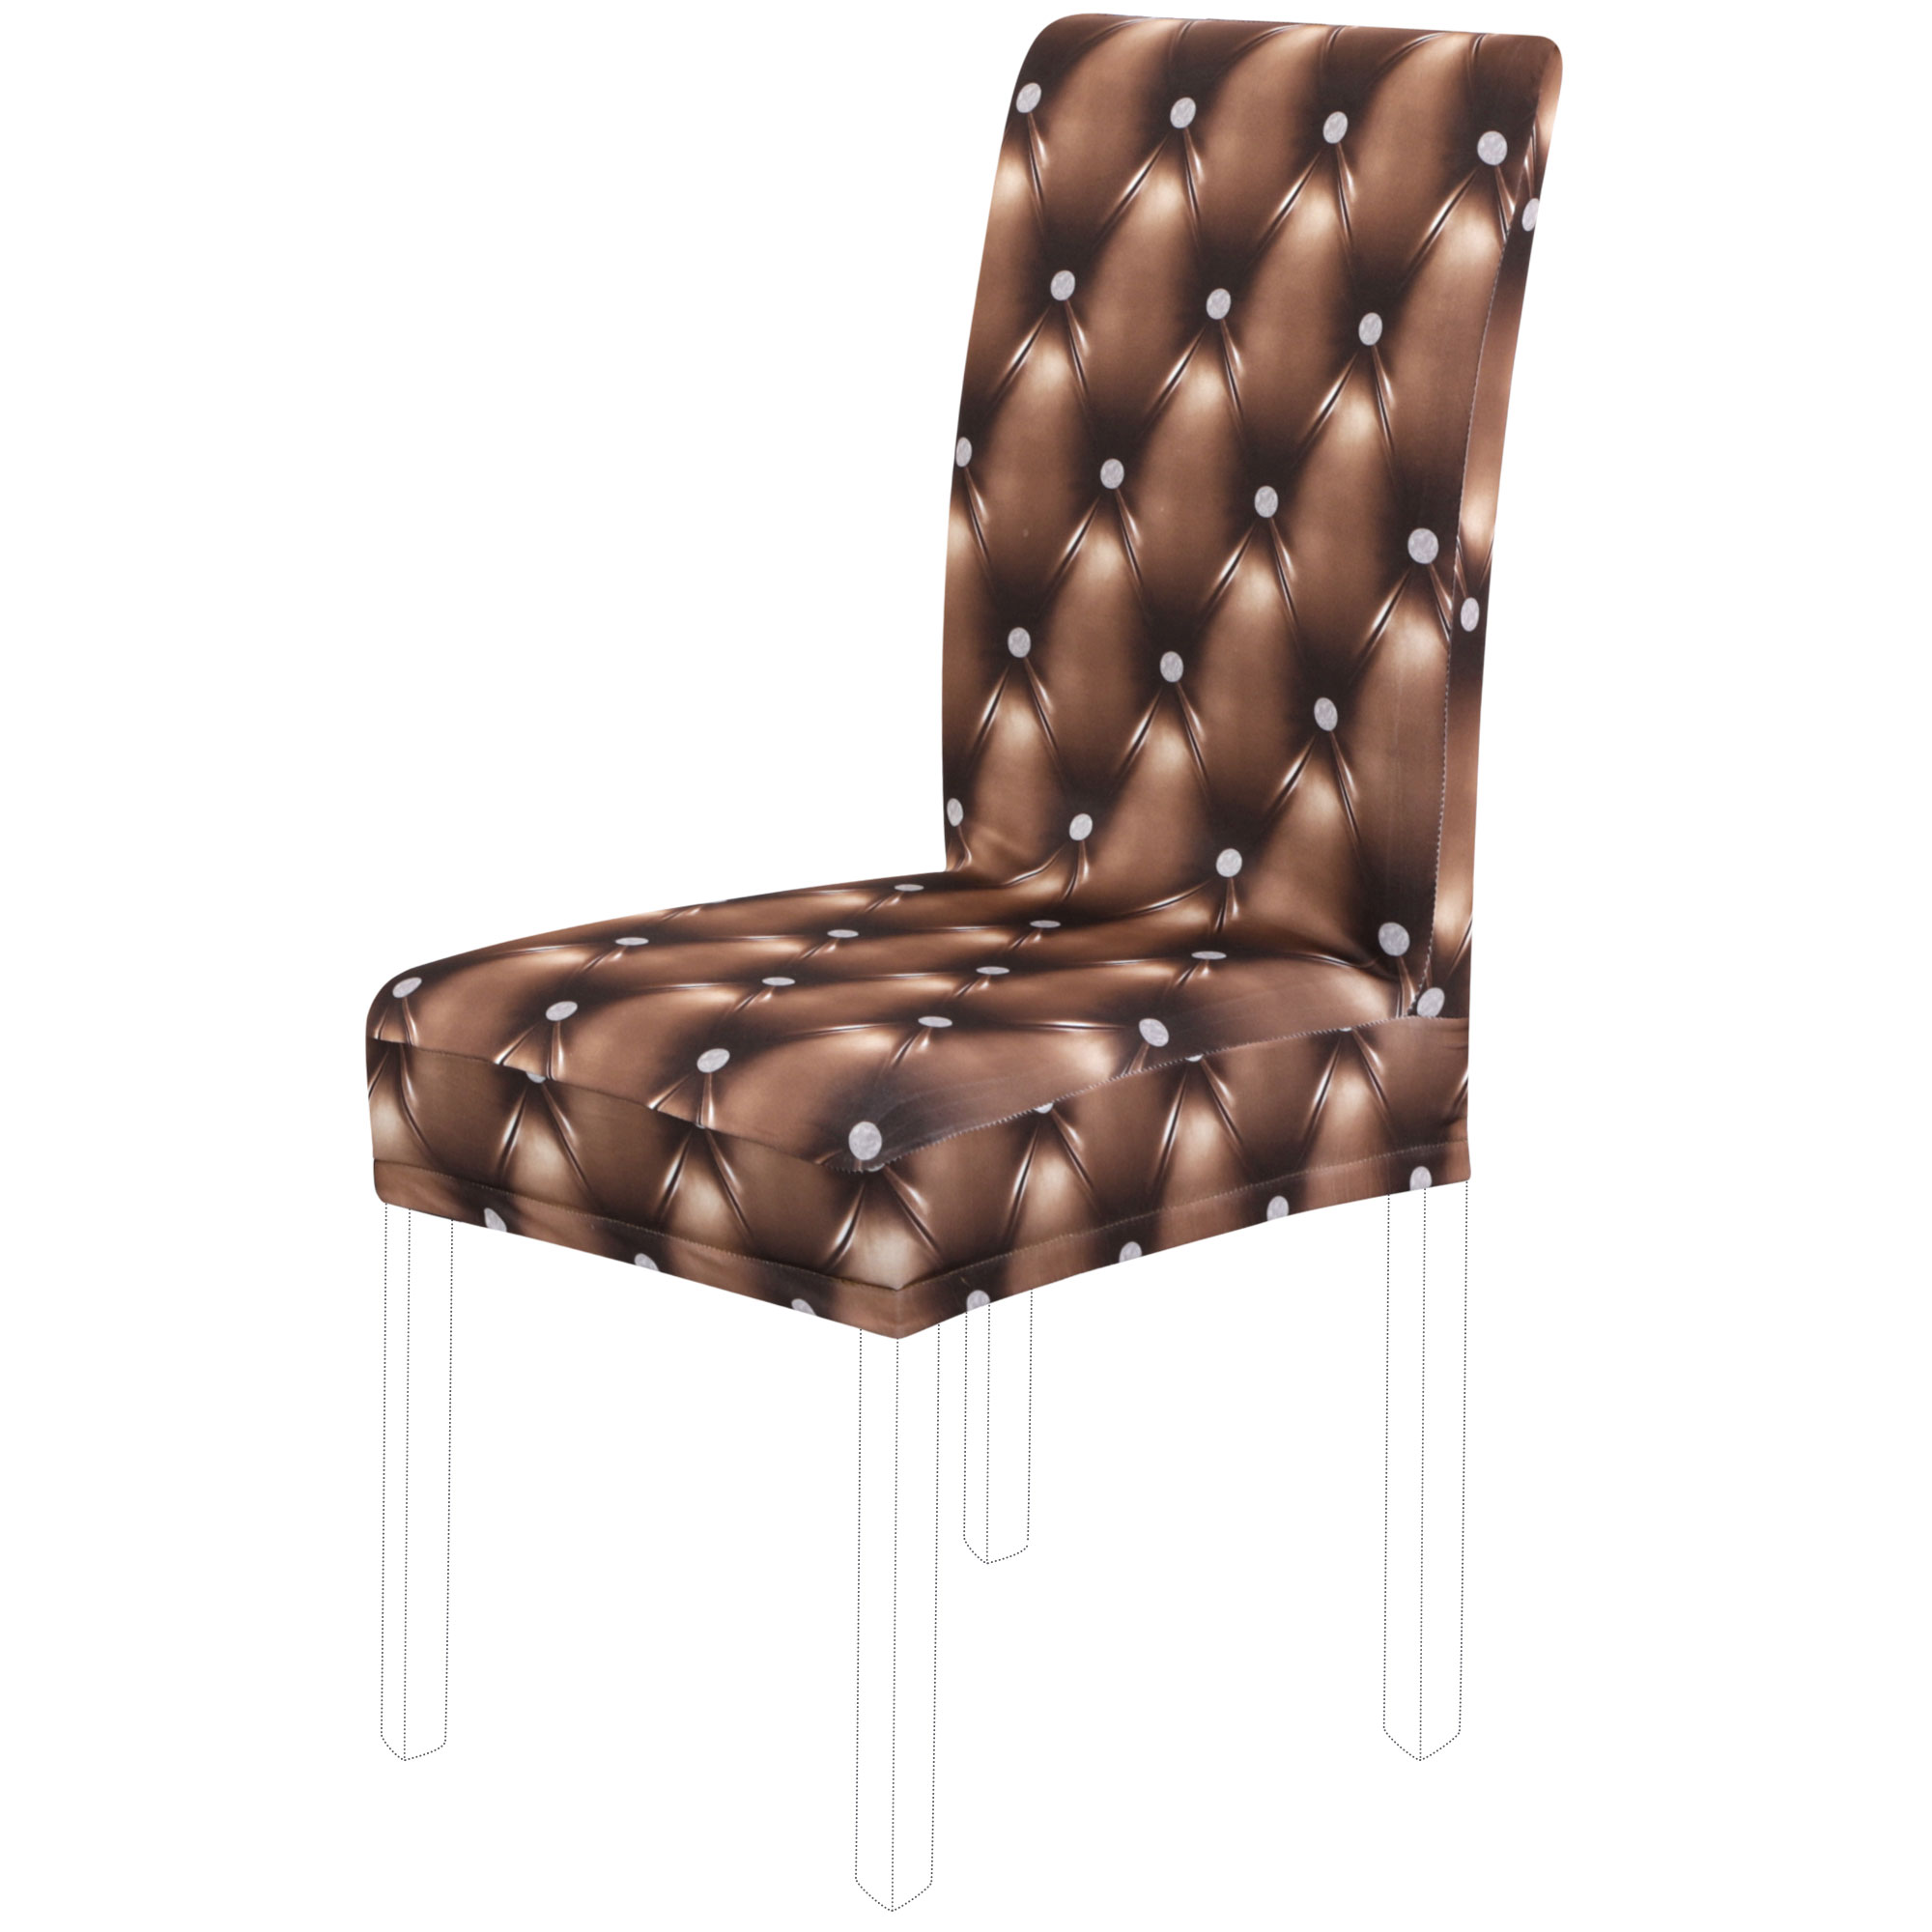 Piccocasa Stretchy Dining Chairs Cover Short Chair Covers Washable Protector Seat Slipcover For Wedding Restaurant Banquet Decor Coffee Color